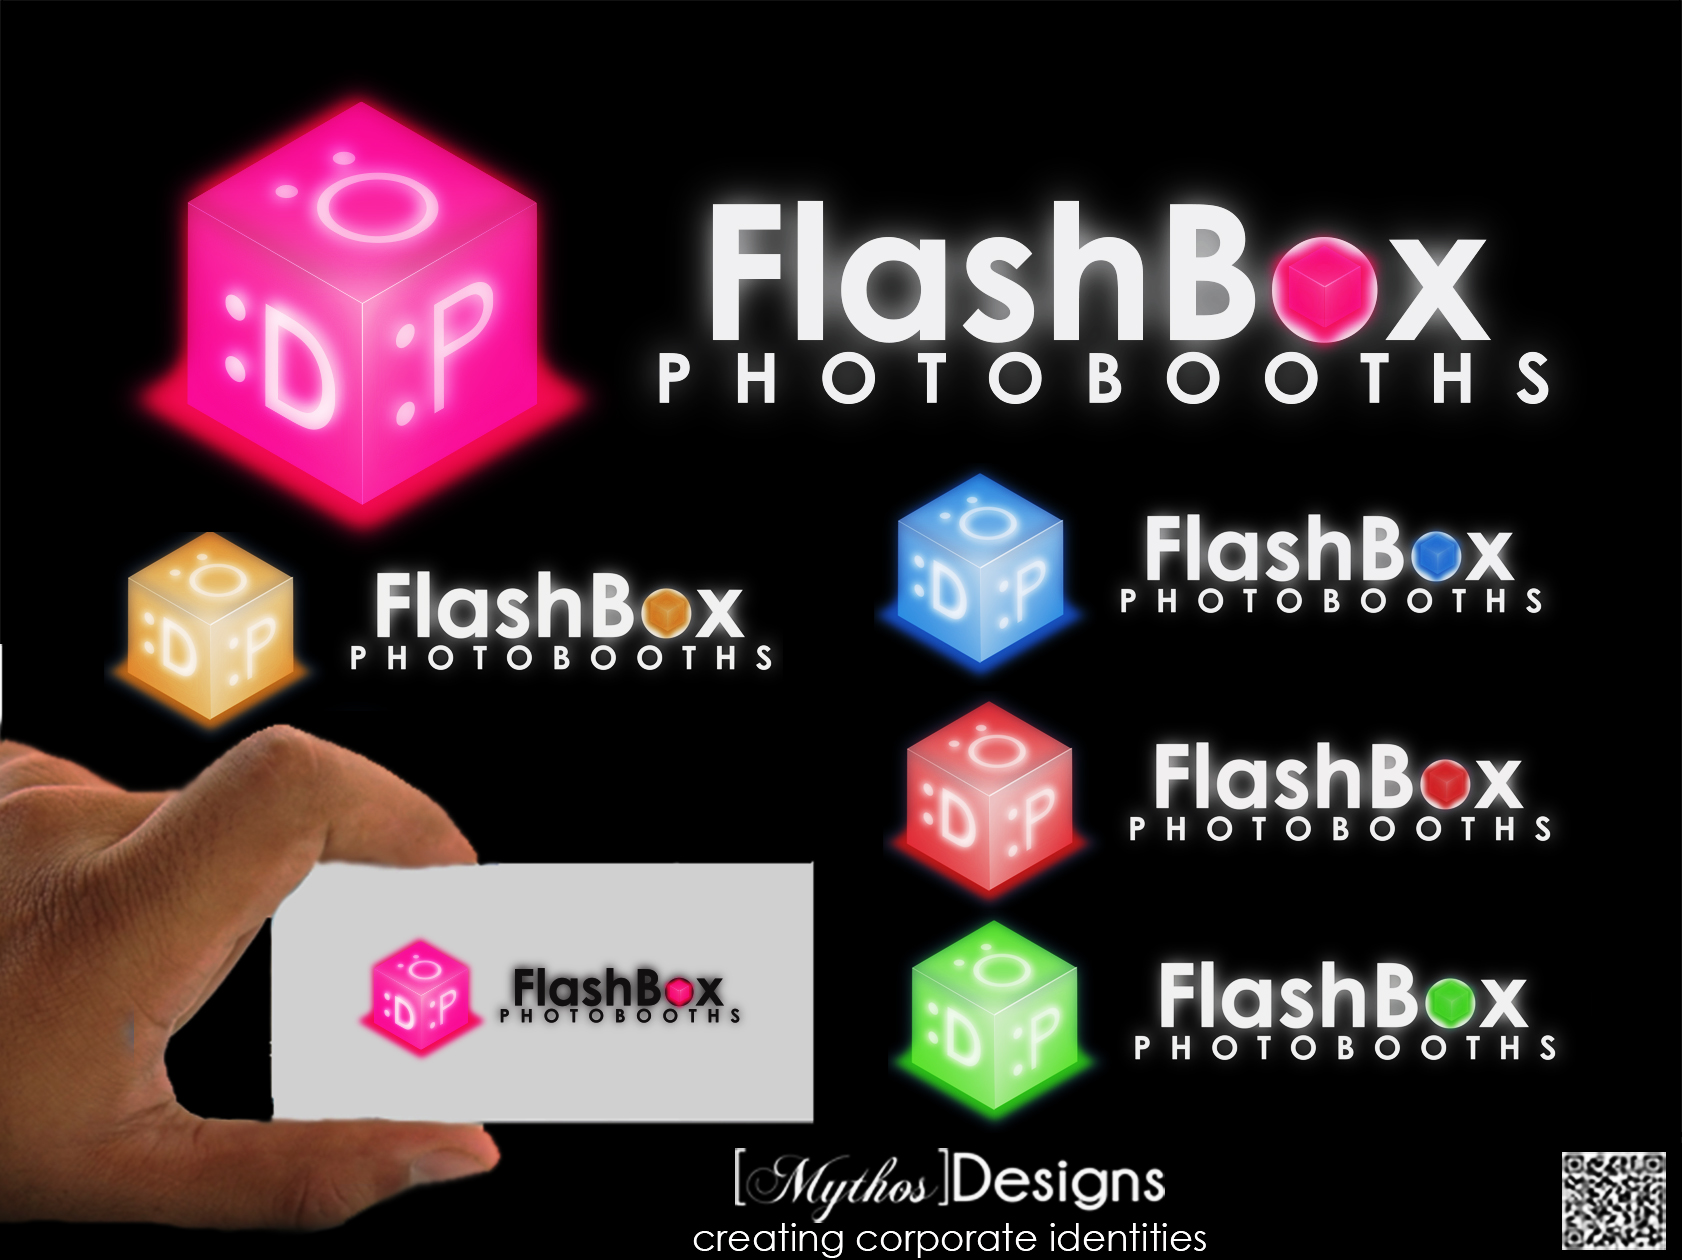 Logo Design by Mythos Designs - Entry No. 141 in the Logo Design Contest New Logo Design for FlashBox Photobooths.